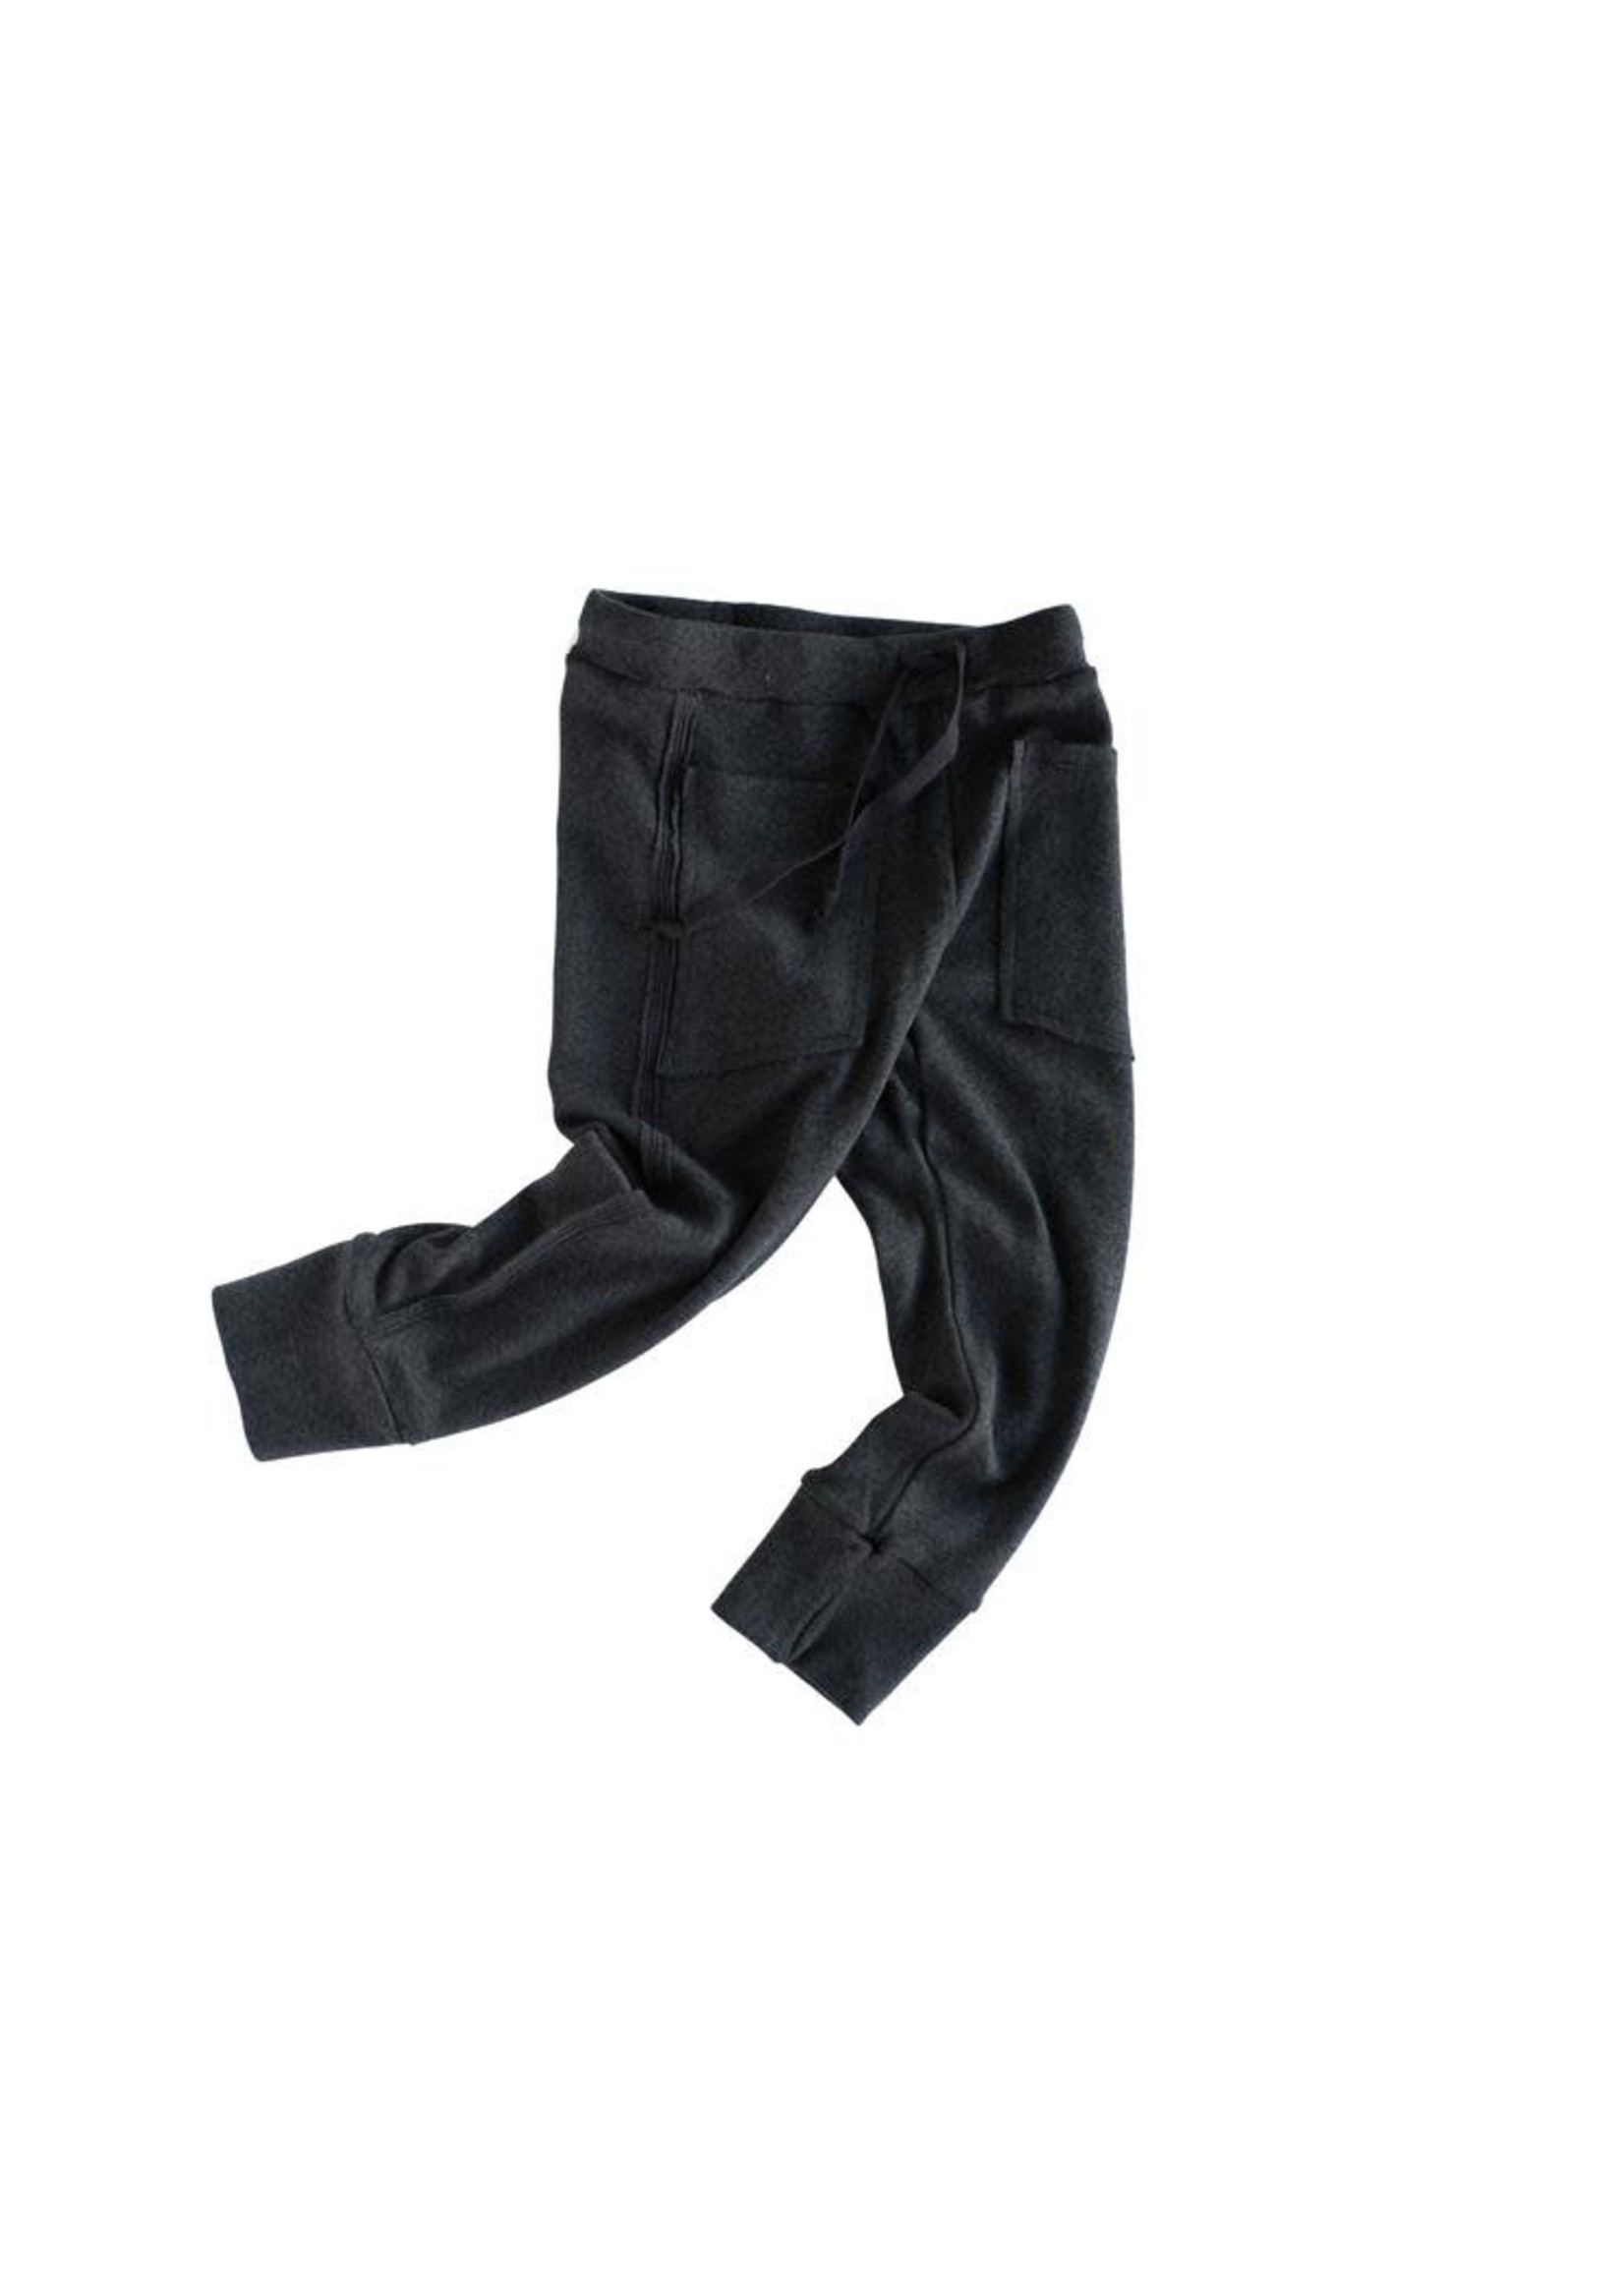 North Kinder NK knit joggers